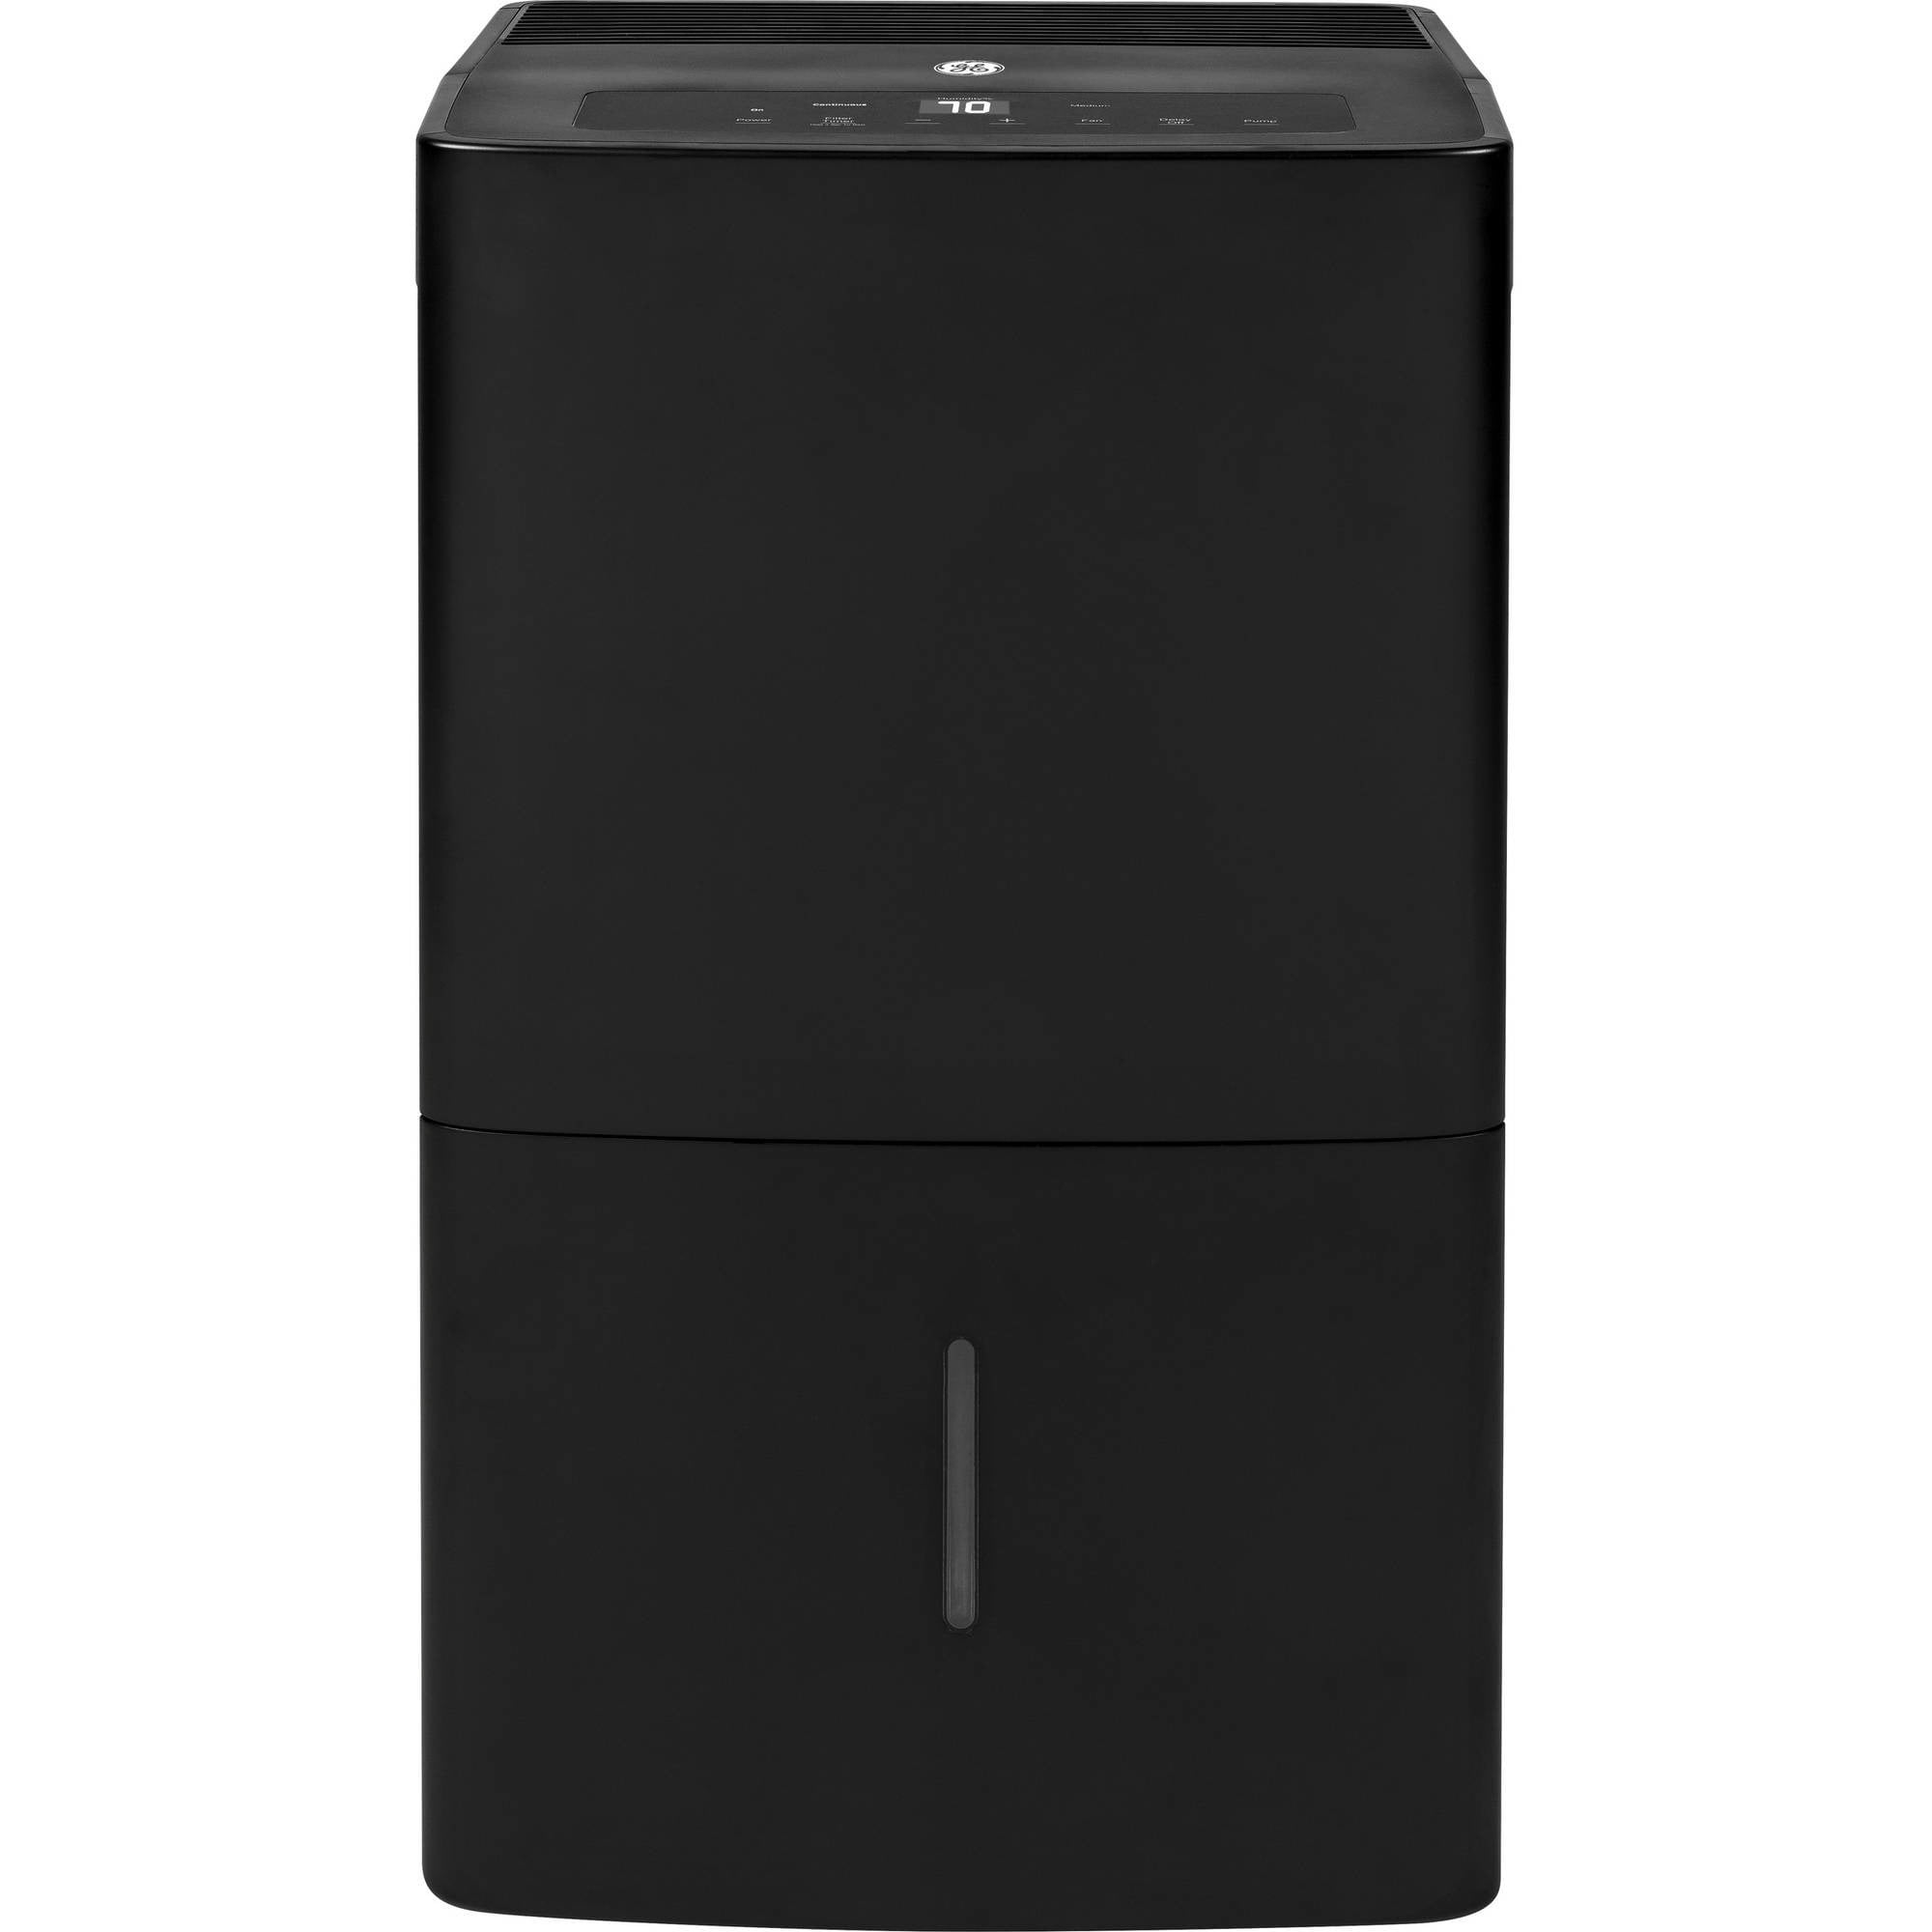 walmart drops prices for frigidaire ge and emerson dehumidifiers appliances 70 pint energy star dehumidifier  adew70lw black